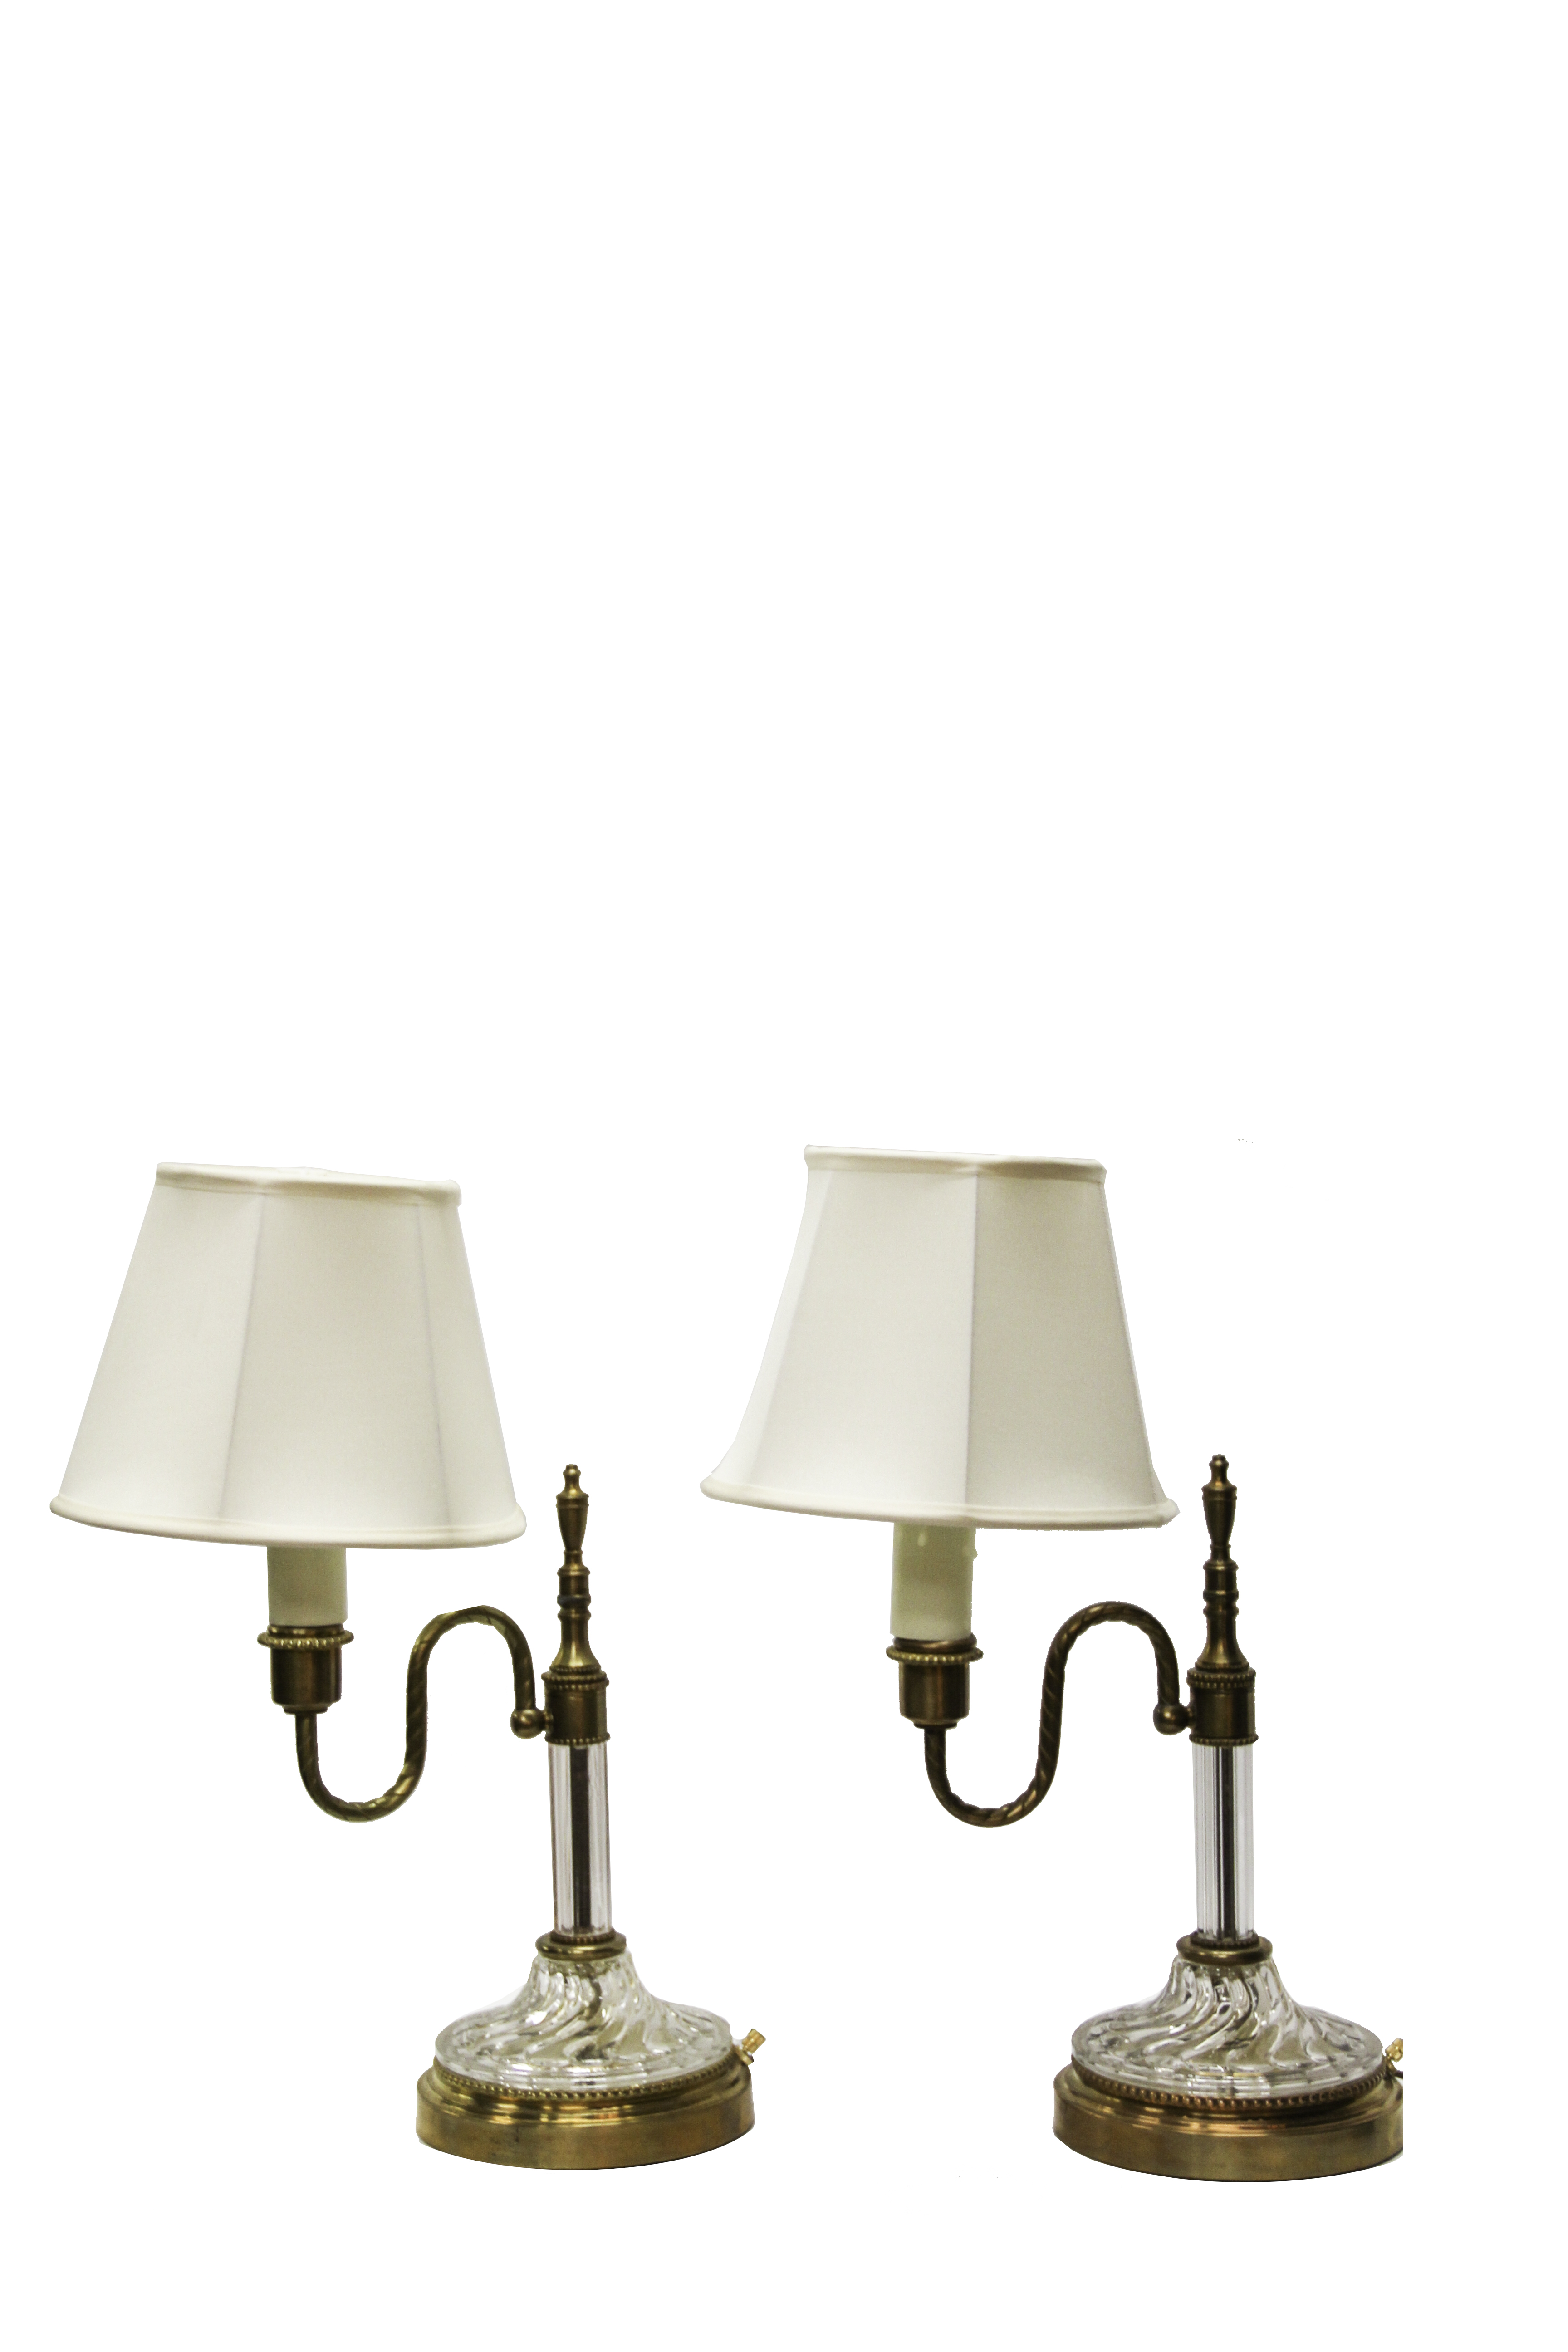 Crystal and Brass Candlestick Lamps   The Lamp Shoppe